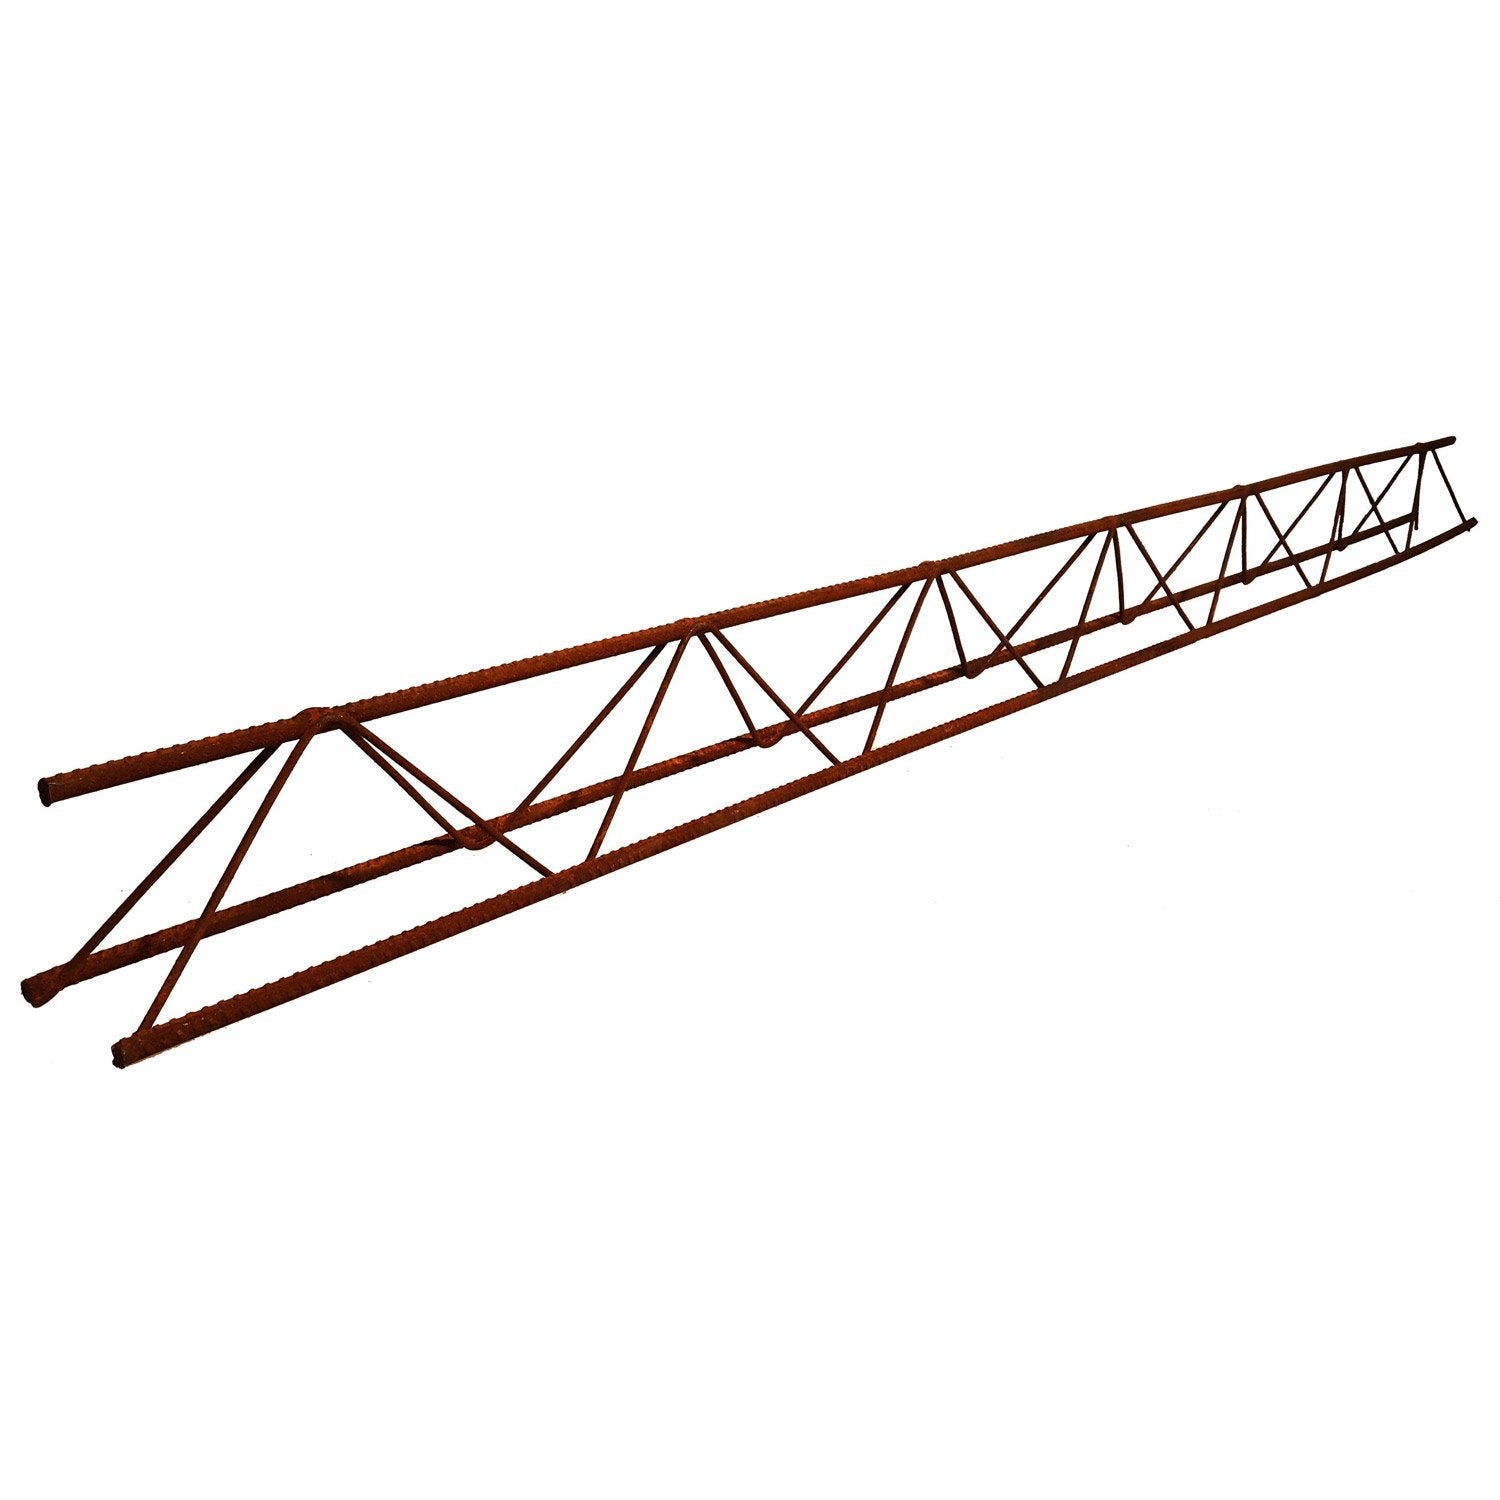 Cha nage triangulaire ouvert diam 8 mm l 6 m leroy merlin - Leroy merlin fer a beton ...